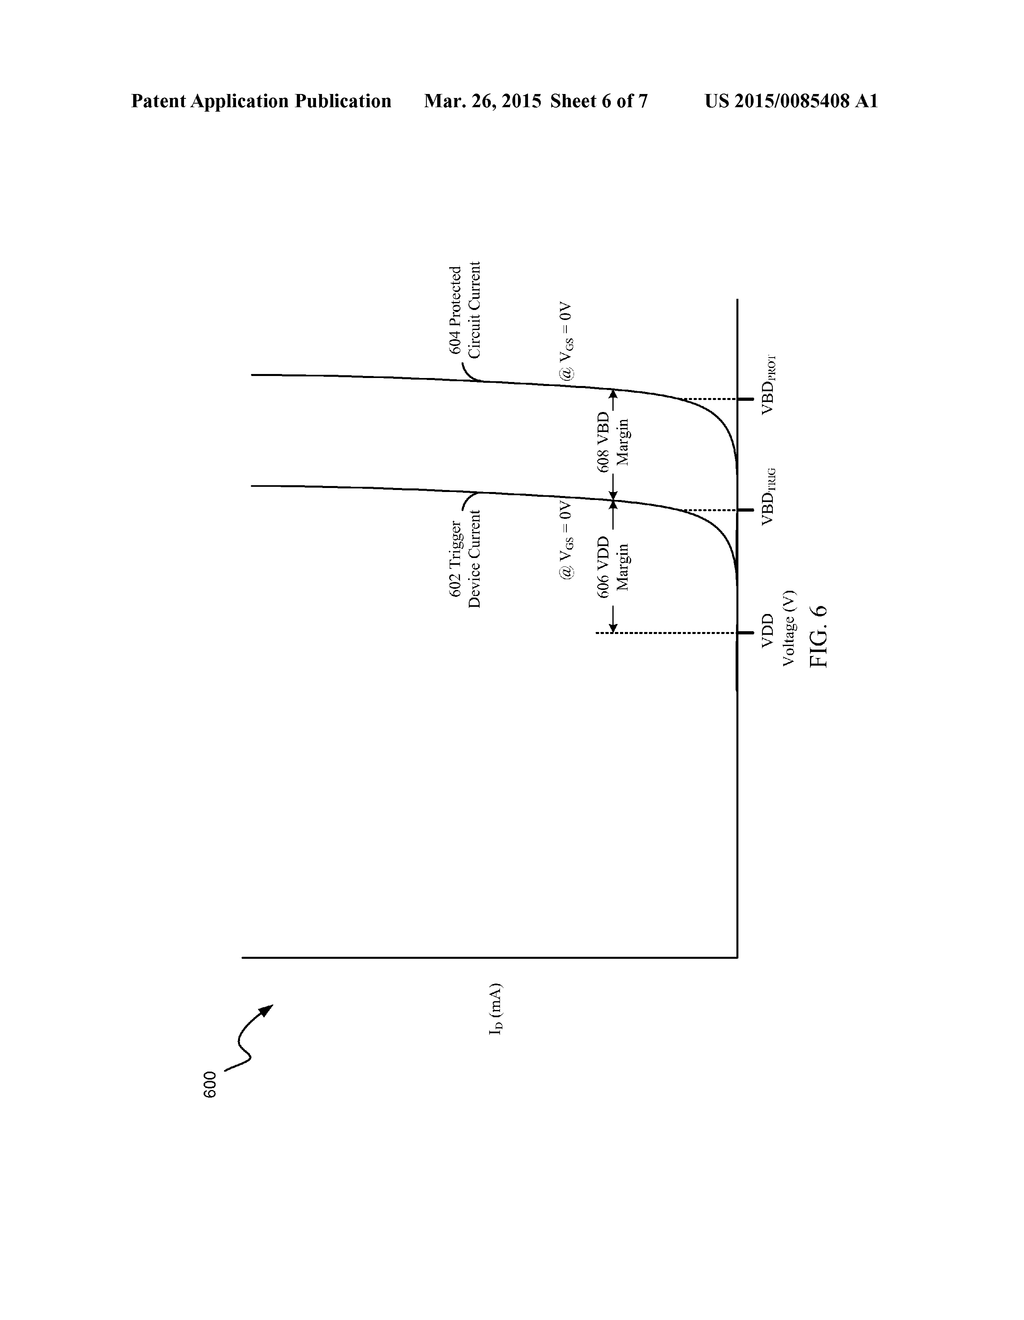 Eos Protection Circuit With Fet Based Trigger Diodes Diagram Schematic And Image 07